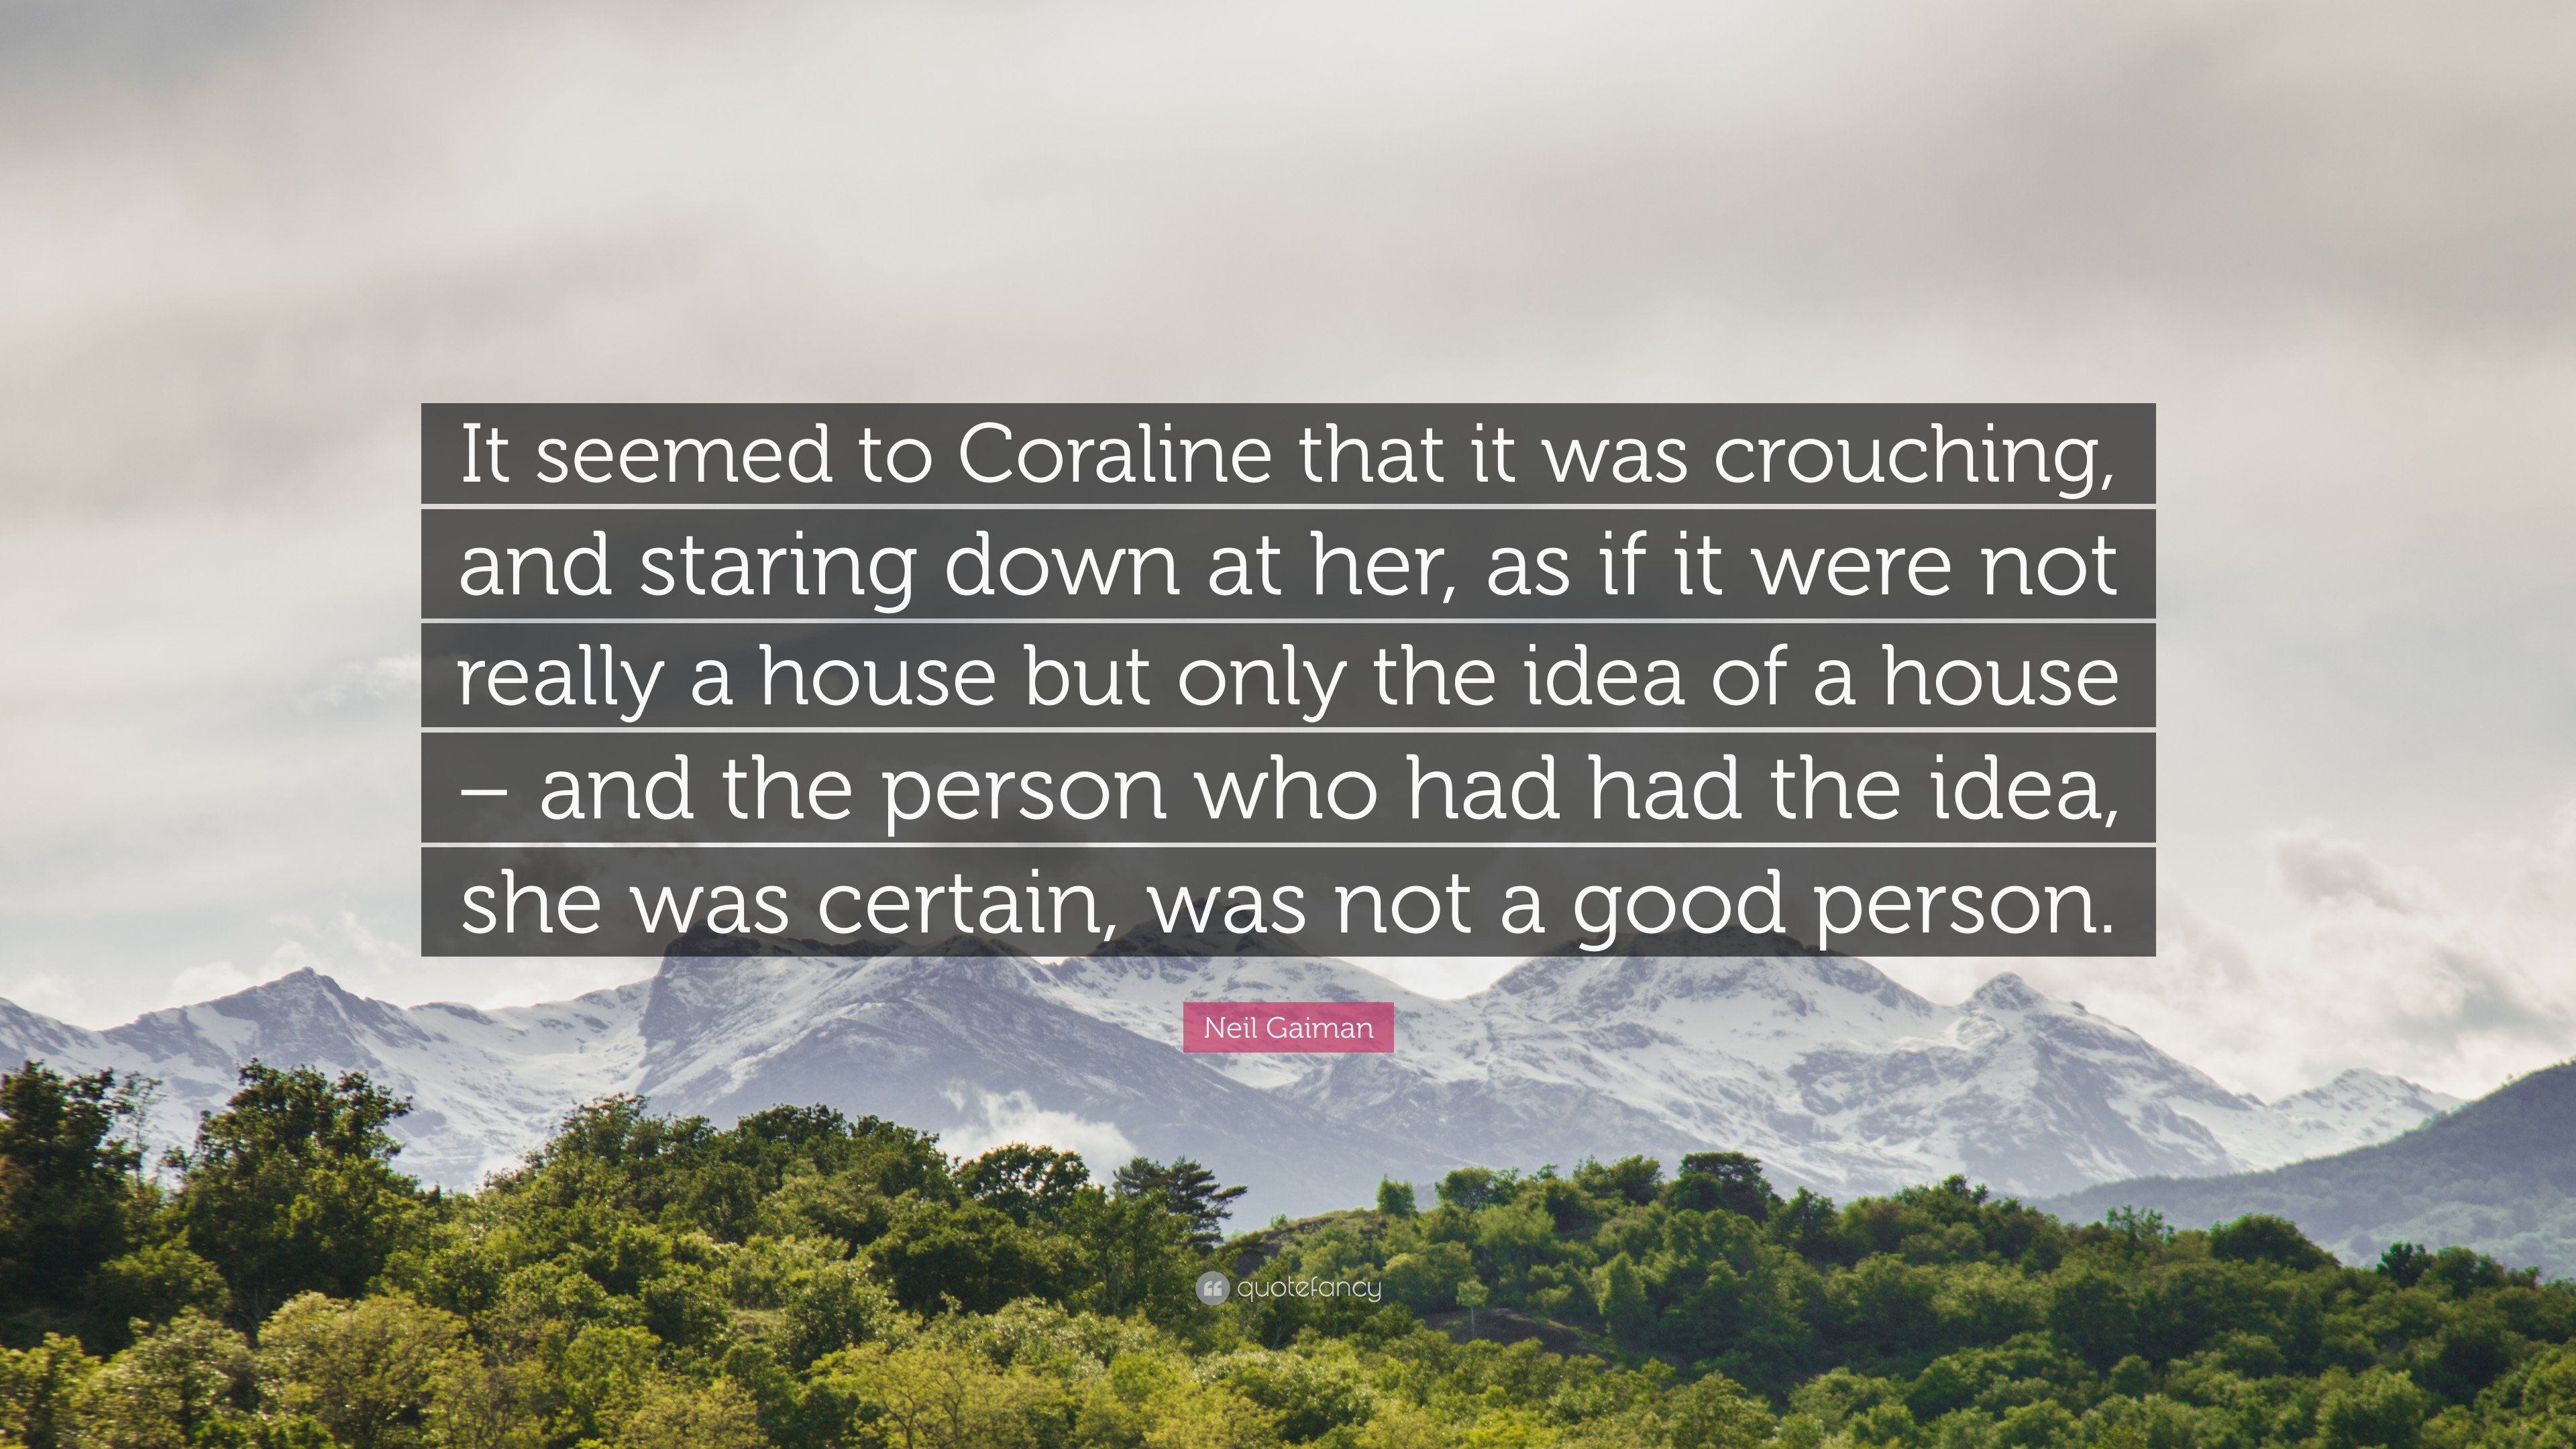 Neil Gaiman Quote It Seemed To Coraline That It Was Crouching And Staring Down At Her As If It Were Not Really A House But Only The Idea 7 Wallpapers Quotefancy